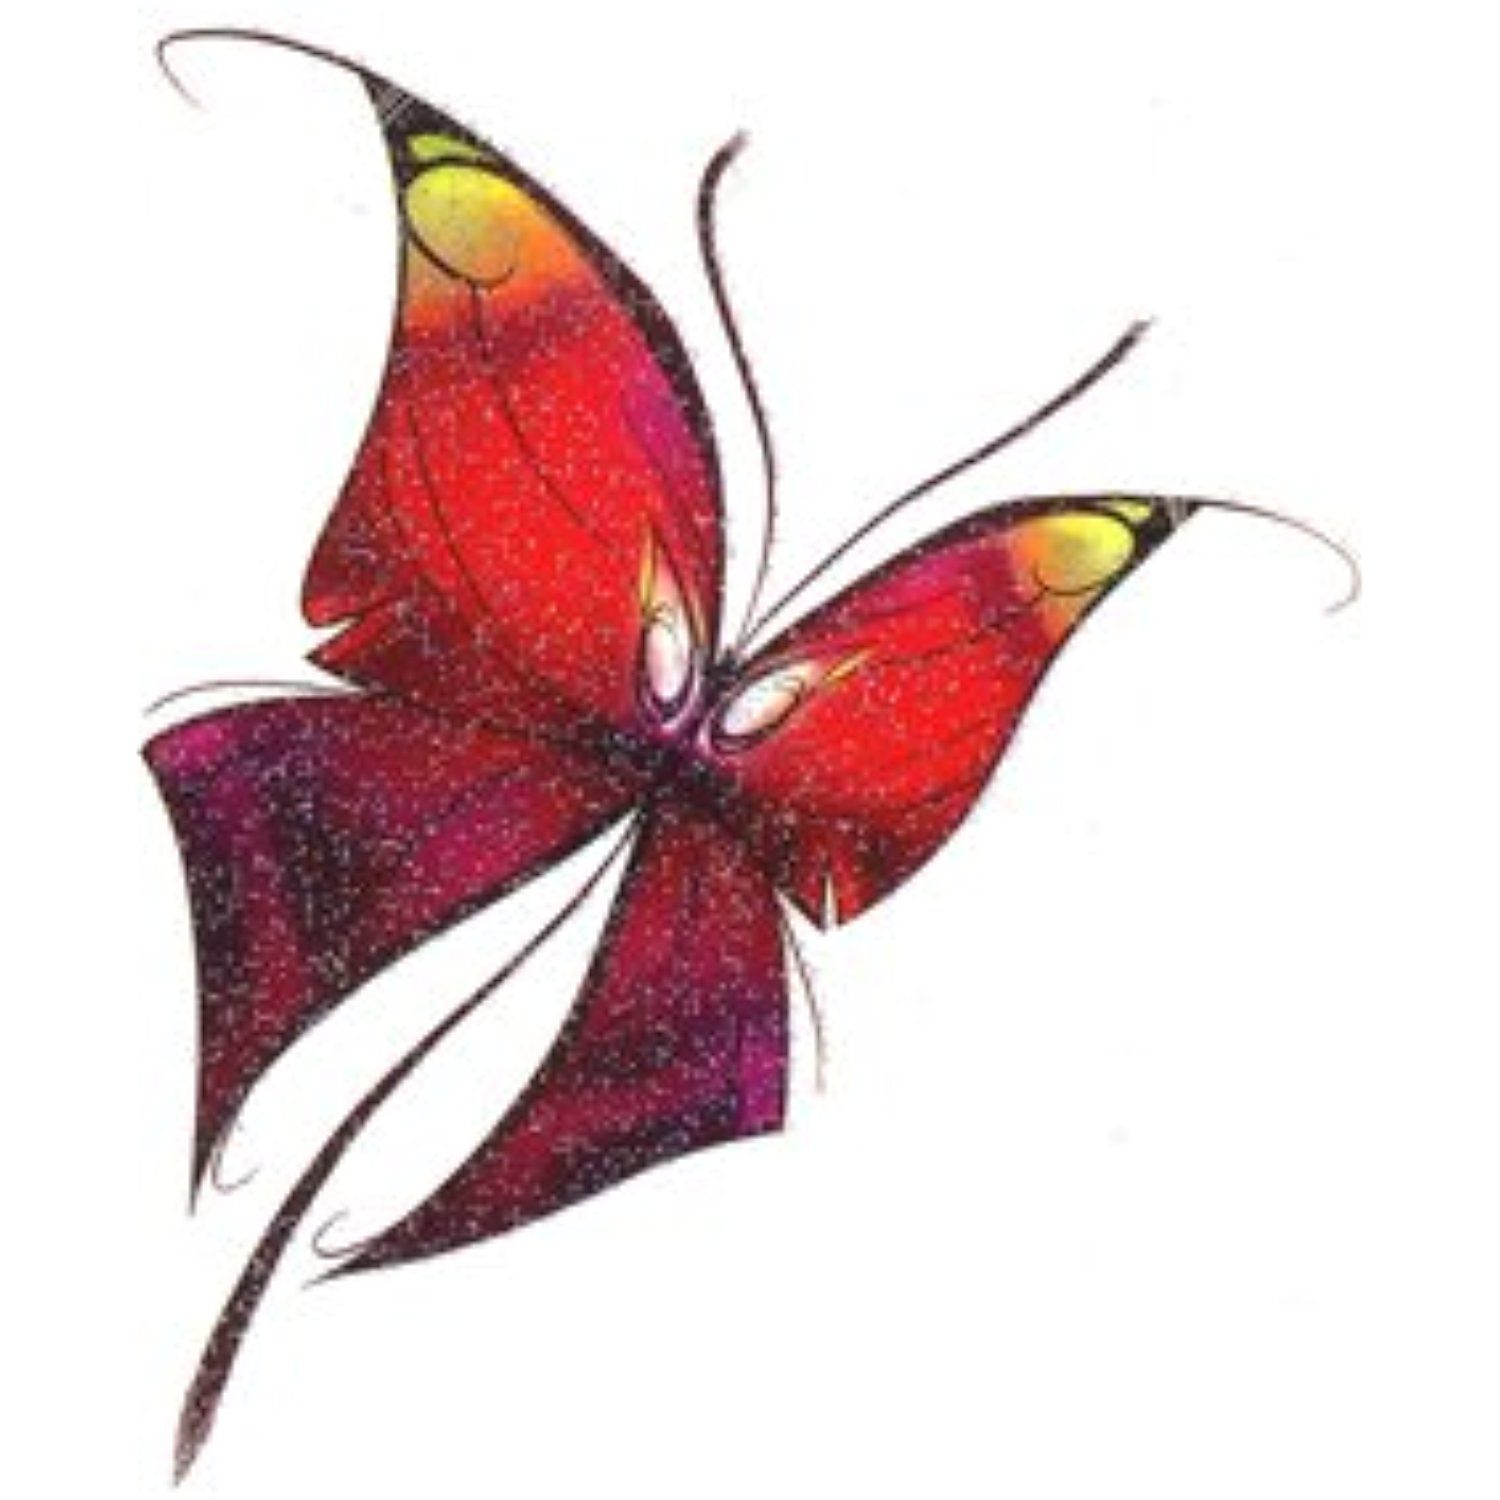 multi color butterfly 2 glitter temporary tattoo read more reviews of the product - Color Butterfly 2